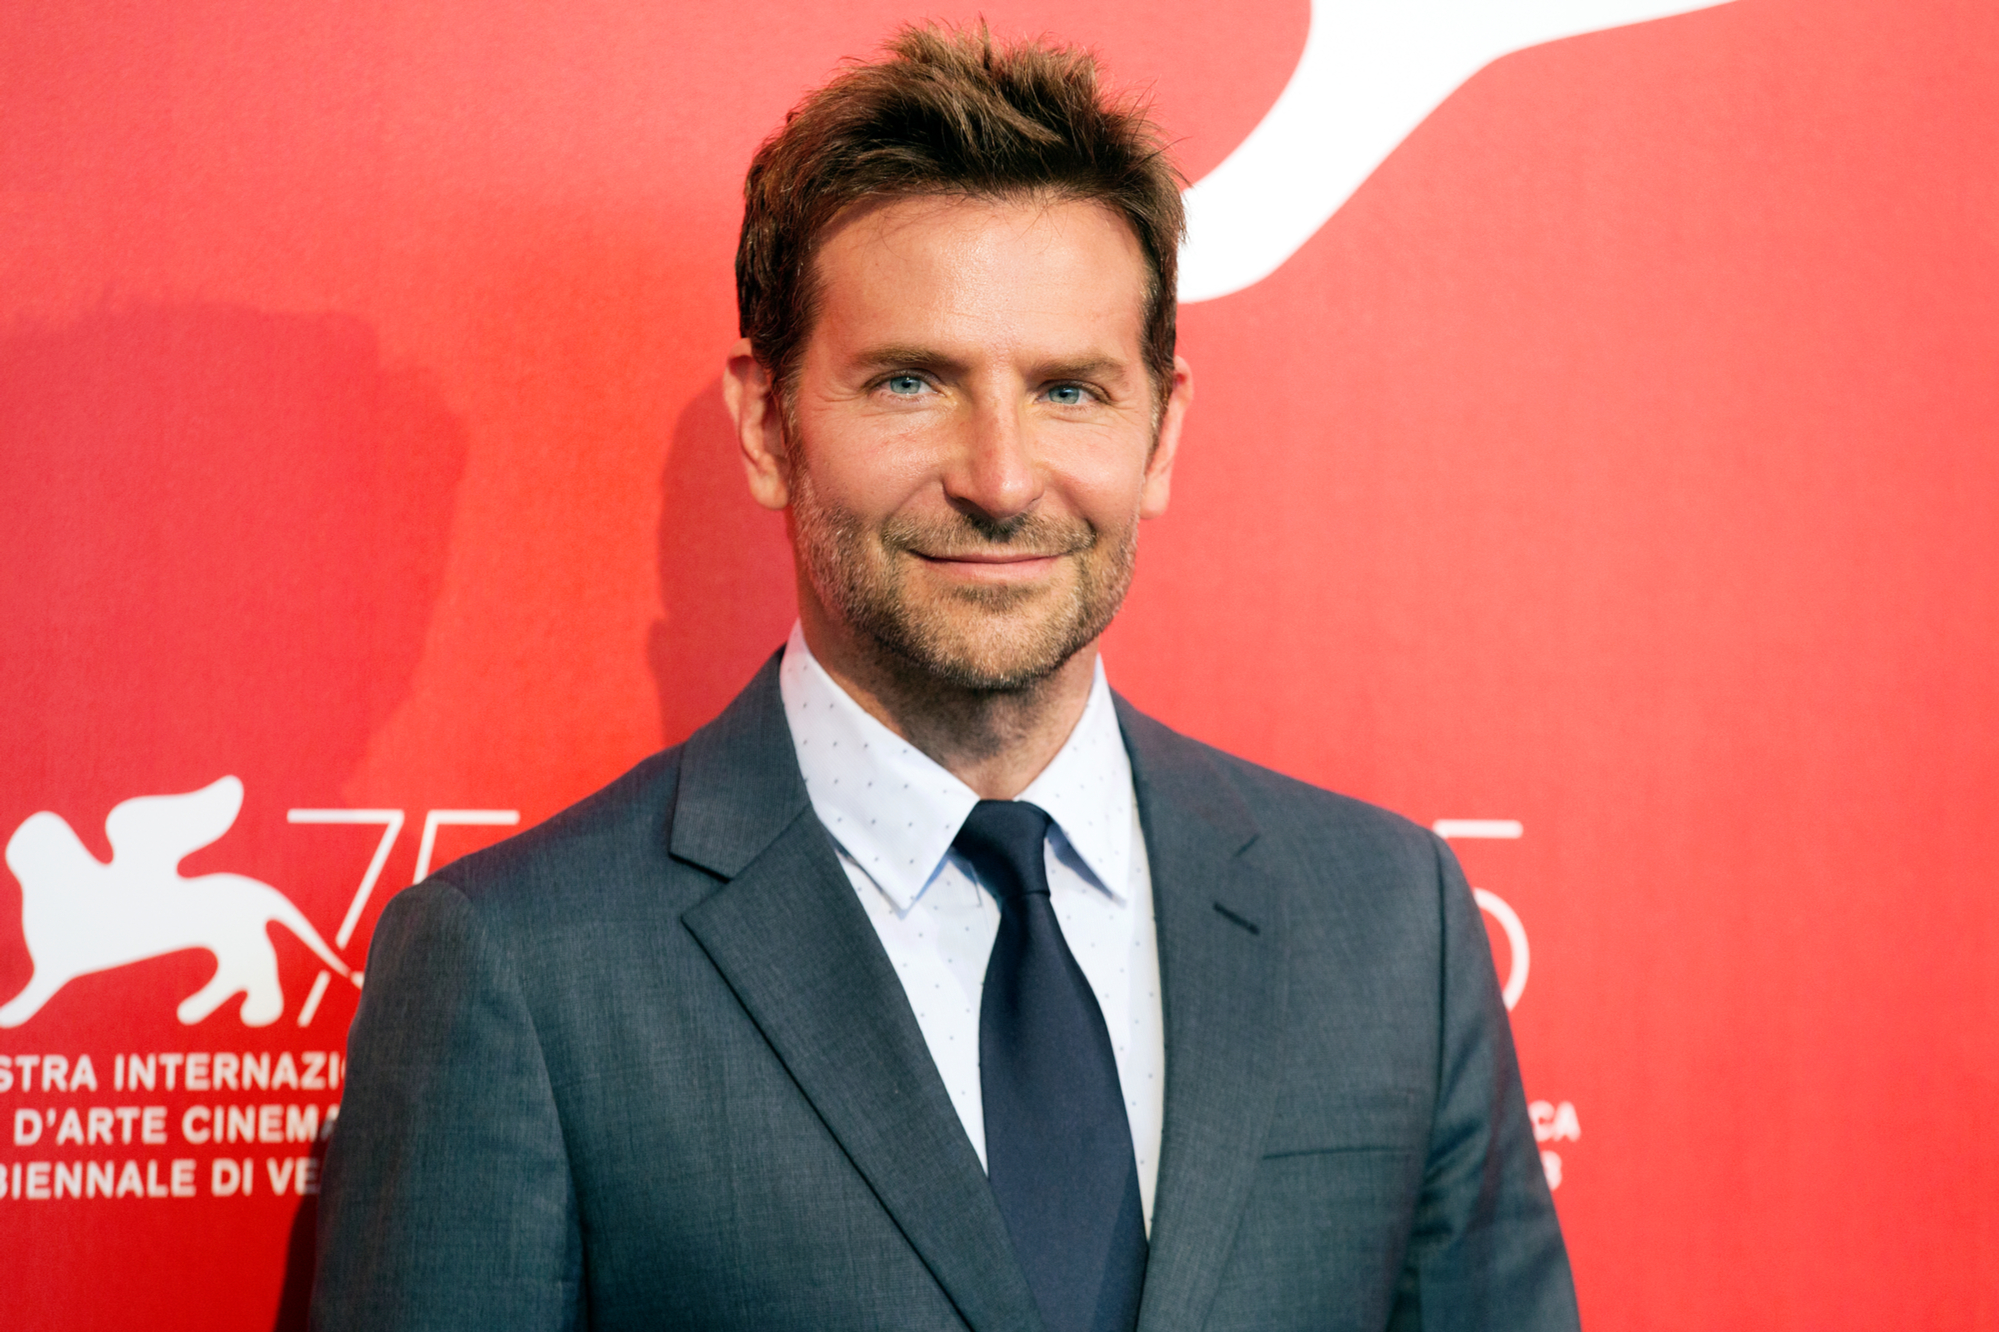 celebrities in recovery Bradley Cooper